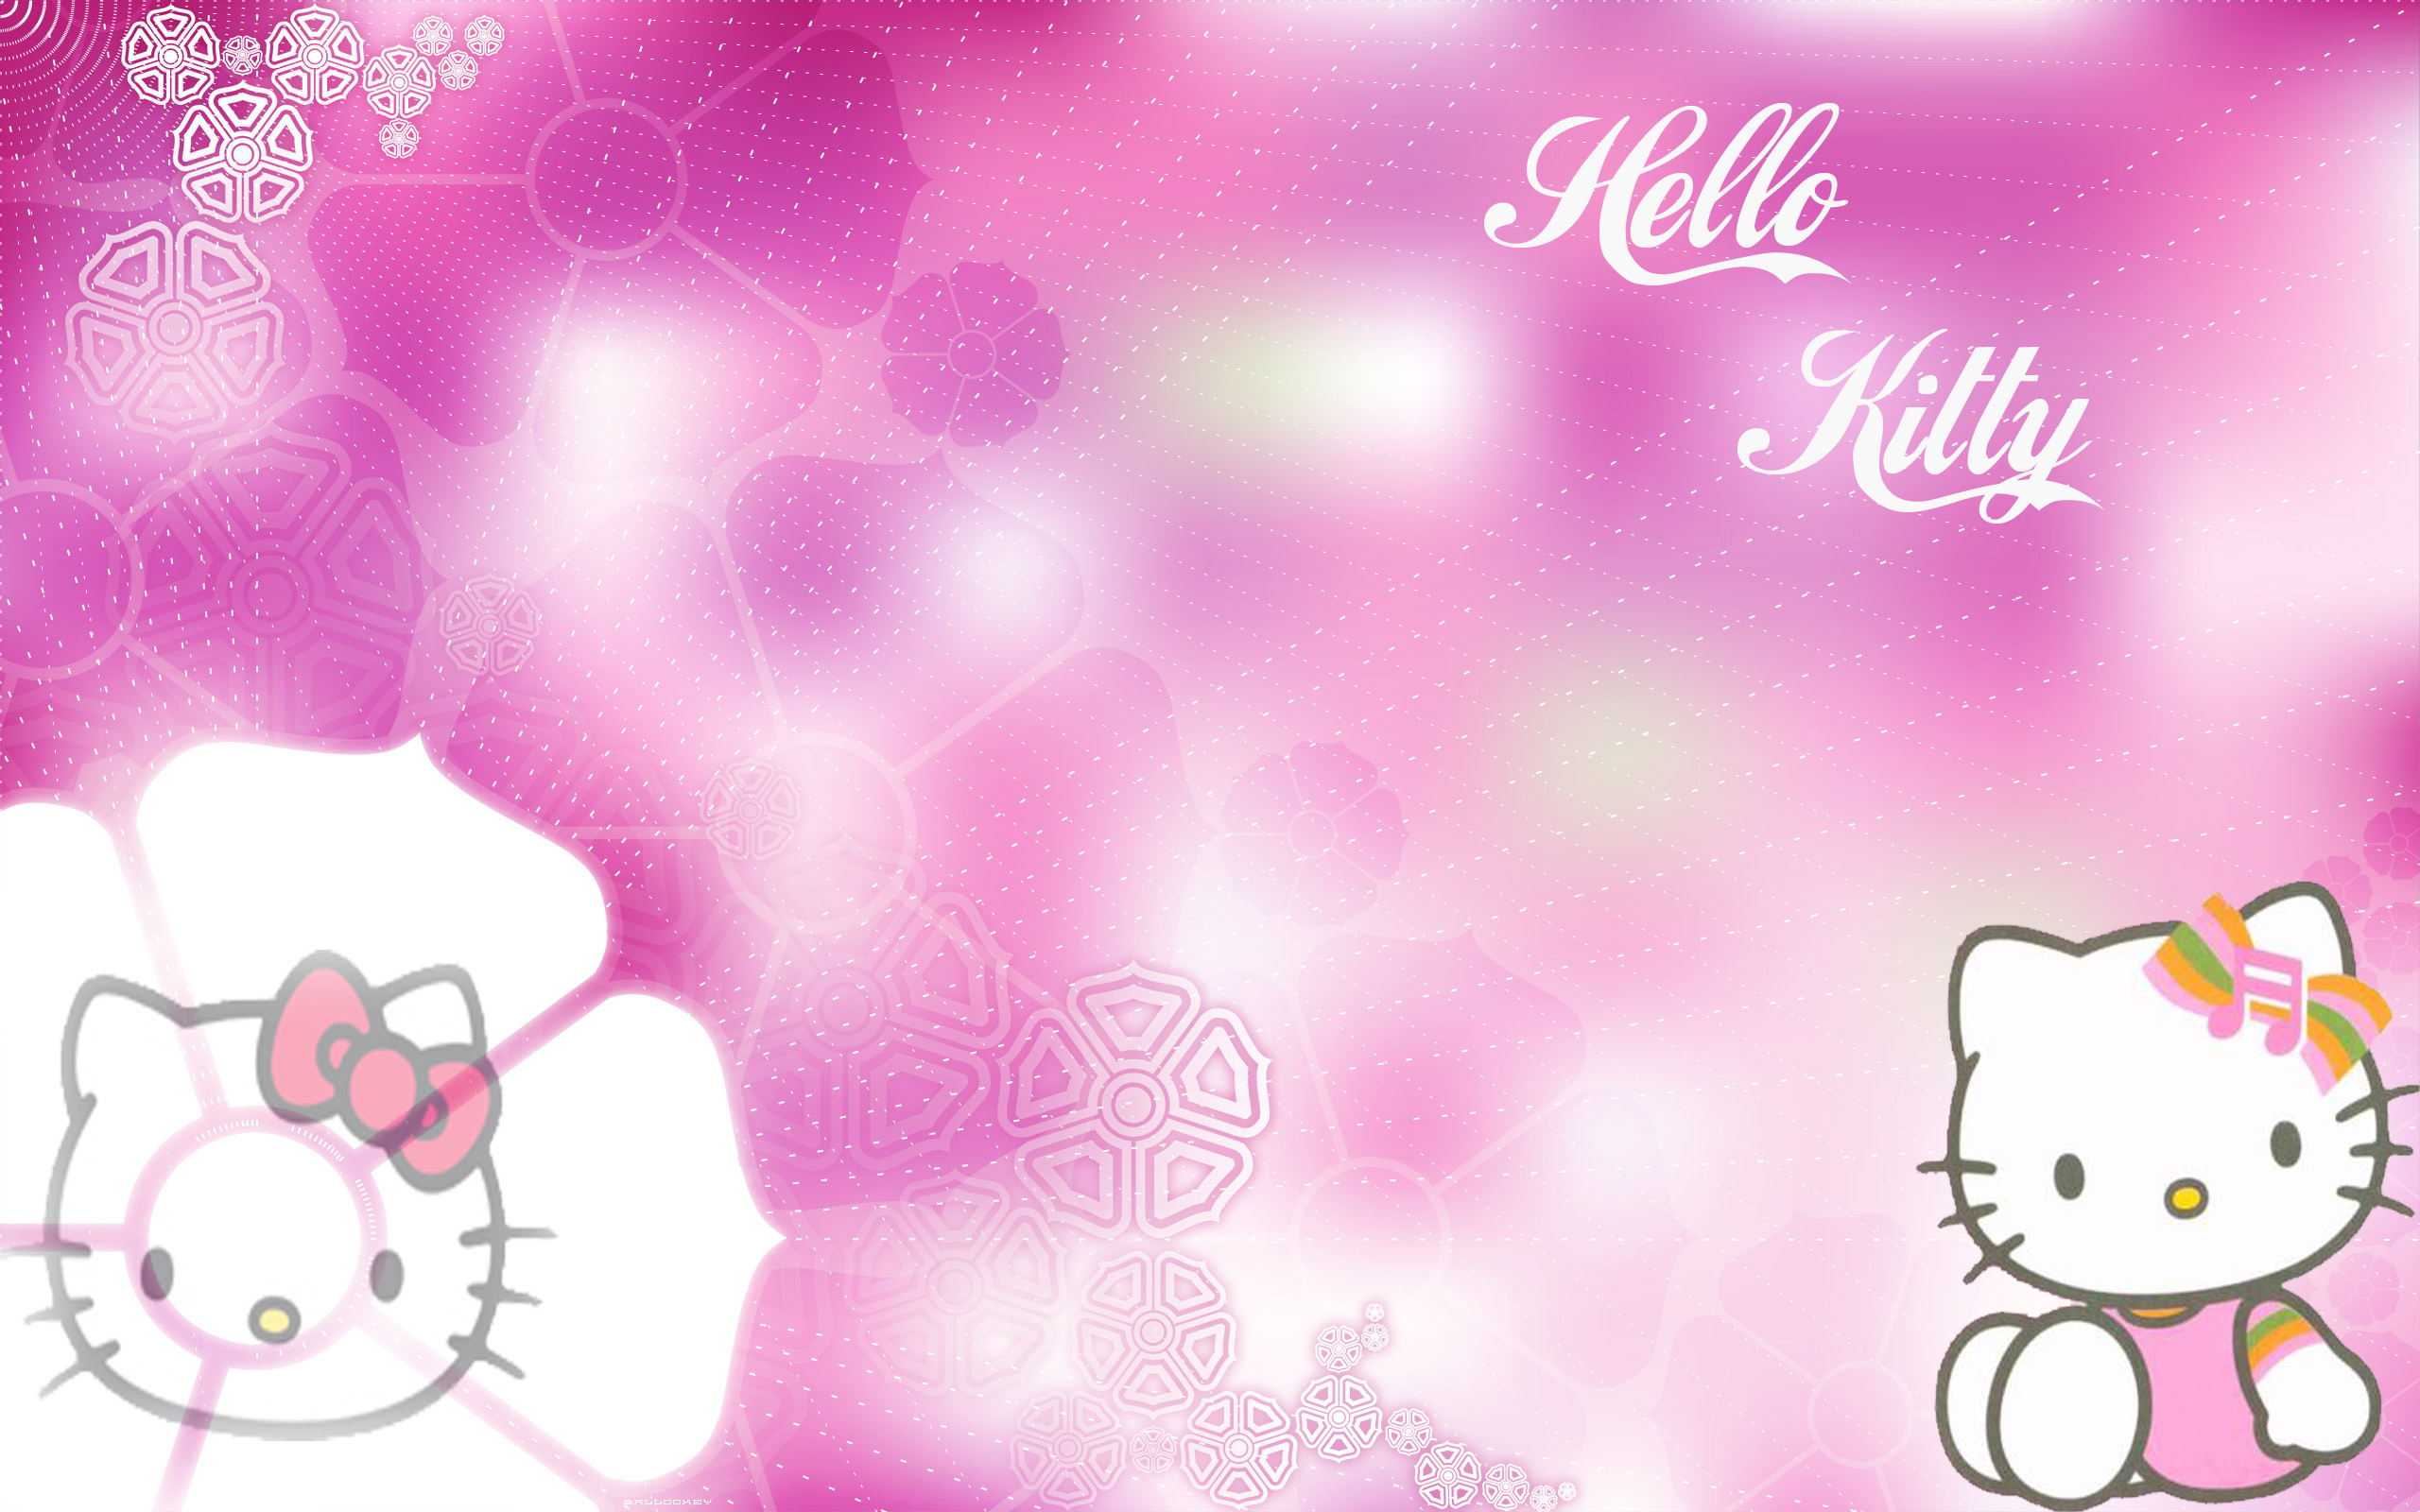 1440x2560 Cute Hello Kitty Wallpaper Background 1440Af